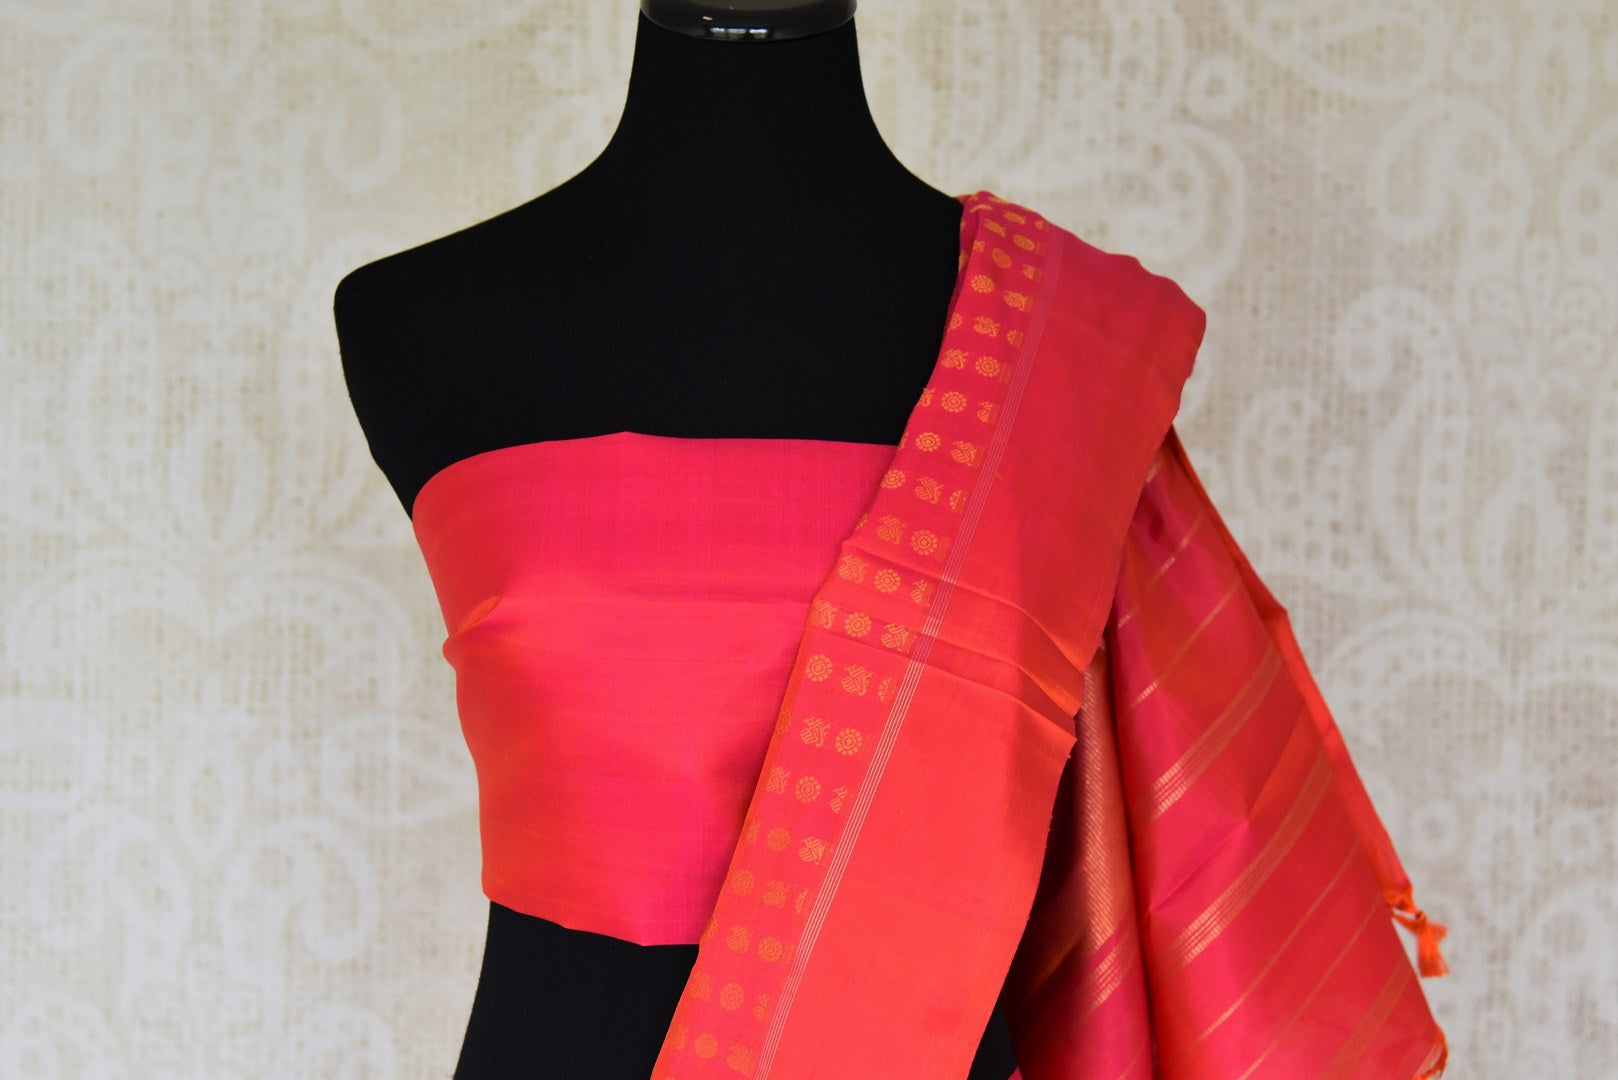 Buy orange pink Kanchipuram saree online in USA with peacock and flower zari buta. Shine bright in best of Indian designer sarees from Pure Elegance Indian fashion store in USA on special occasions. Choose from a splendid variety of Kanjivaram silk sarees, Banarasi sarees, pure handwoven saris. Shop online.-blouse pallu